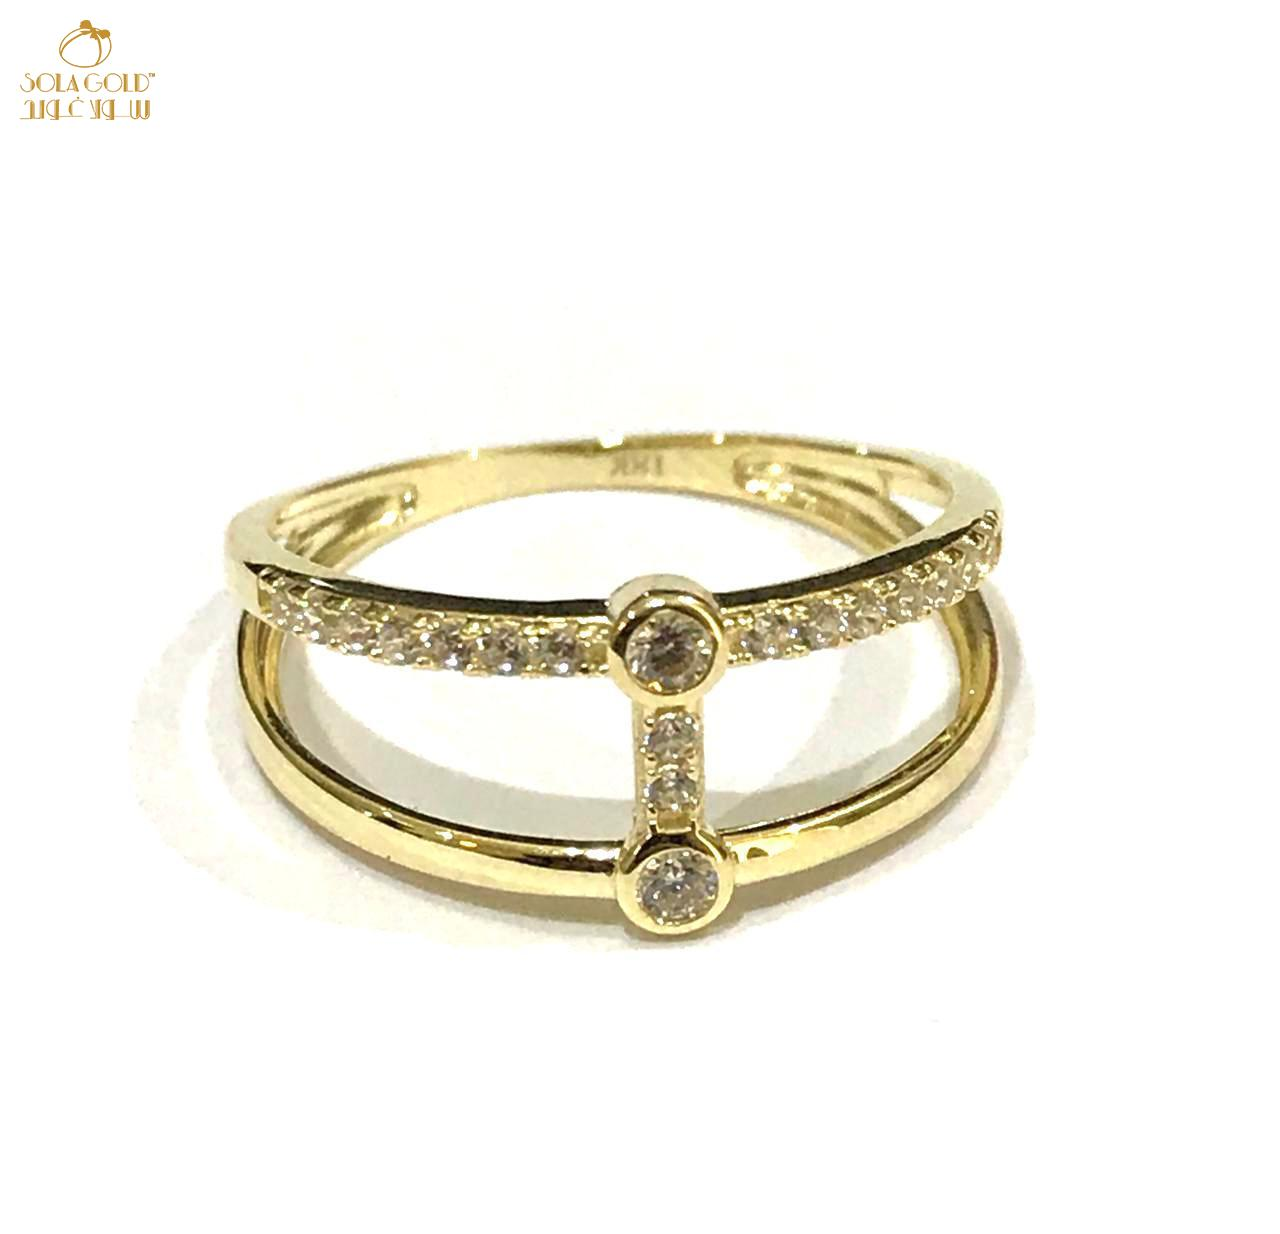 REAL GOLD RING 18K (SIZE:7.1)